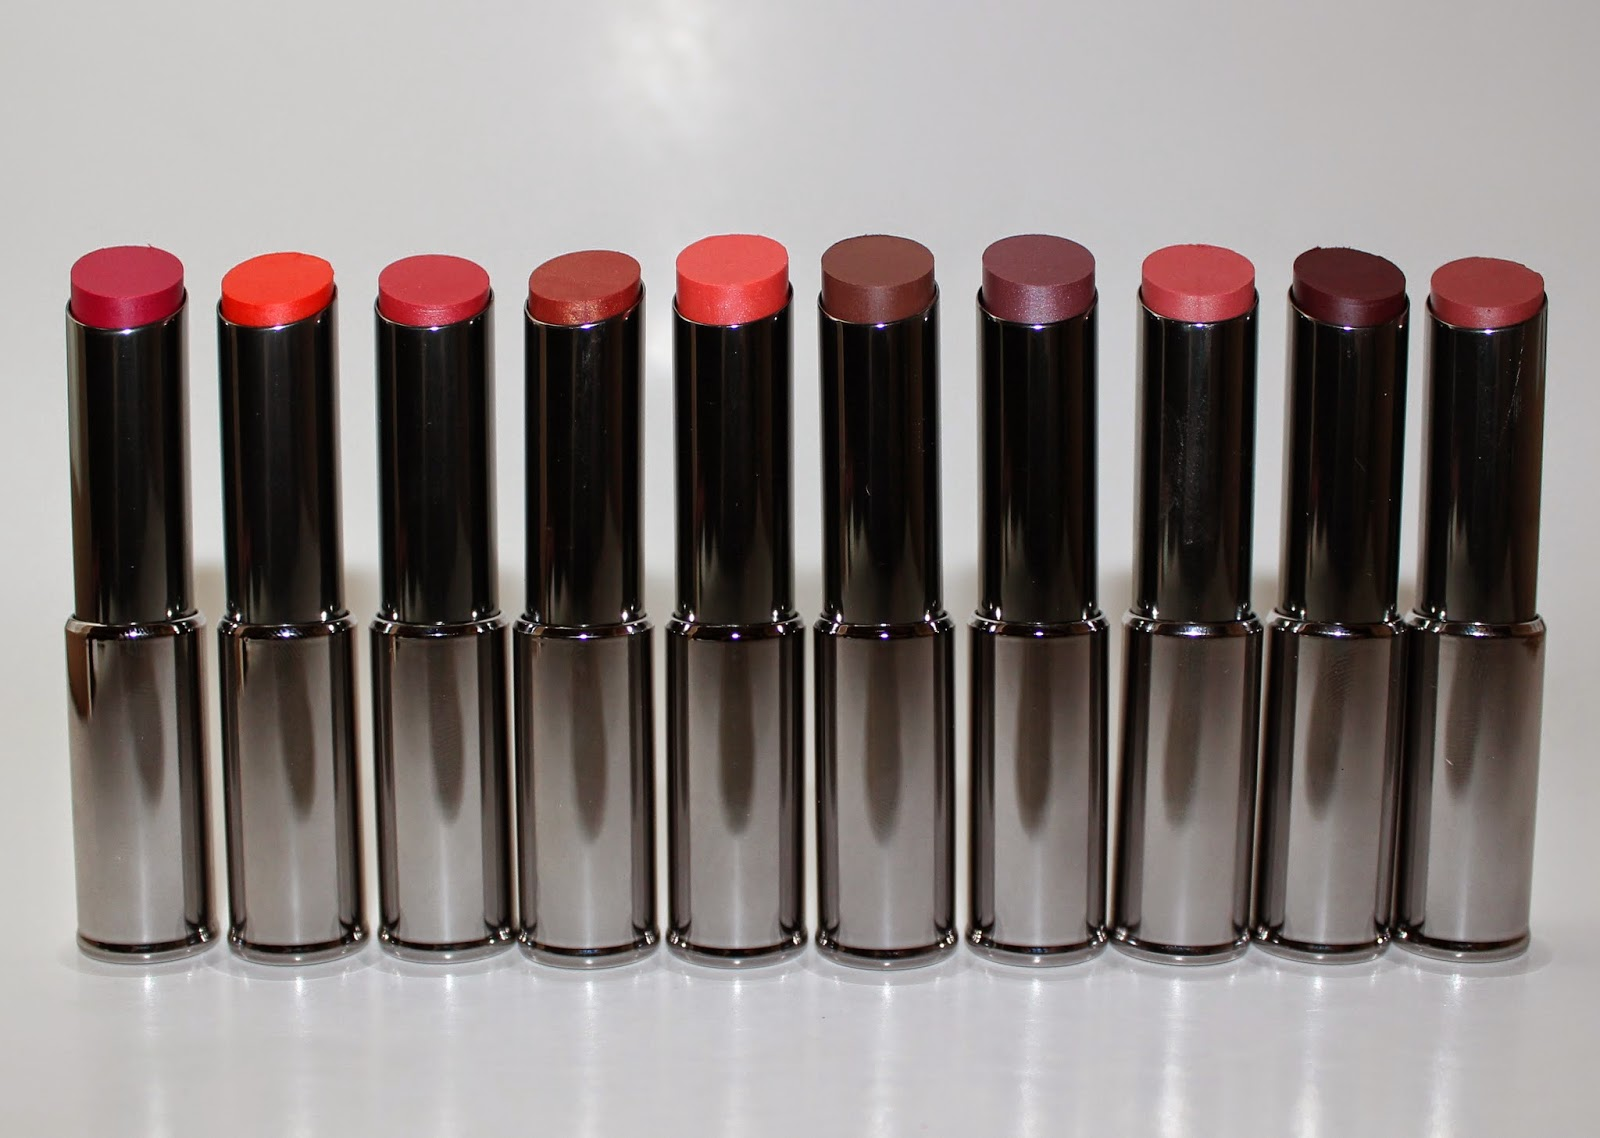 Mary Kay True Dimensions Lipsticks